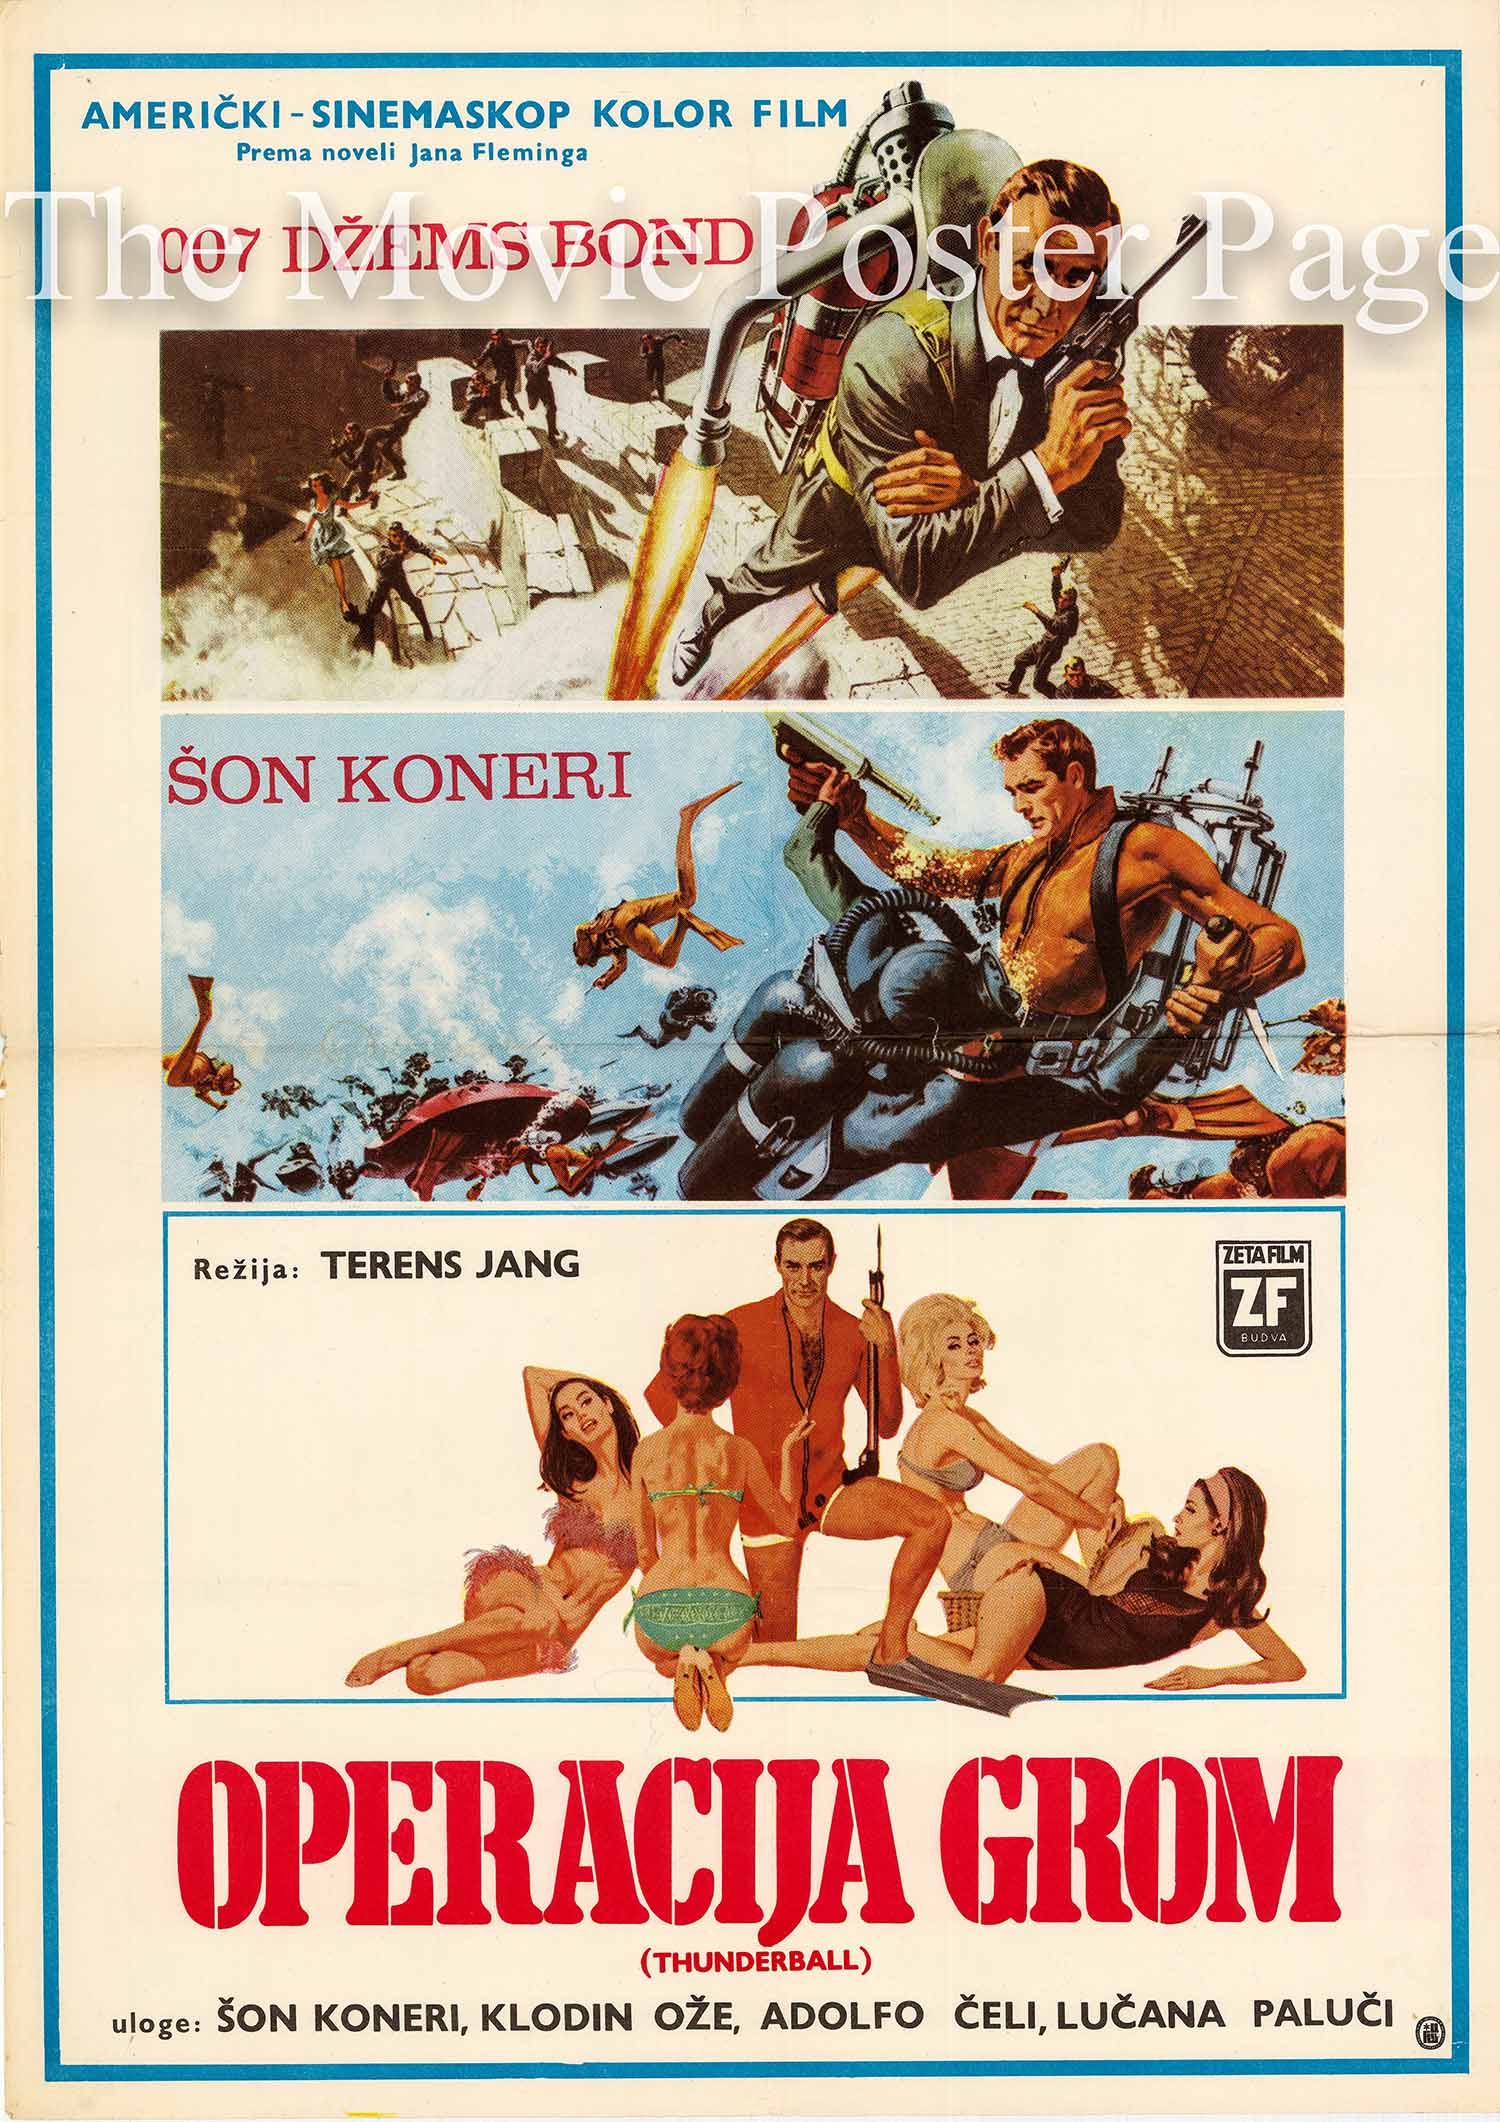 Pictured is a Yugoslavian promotional poster for the 1965 Terence Young film Thunderball starring Sean Connery as James Bond.